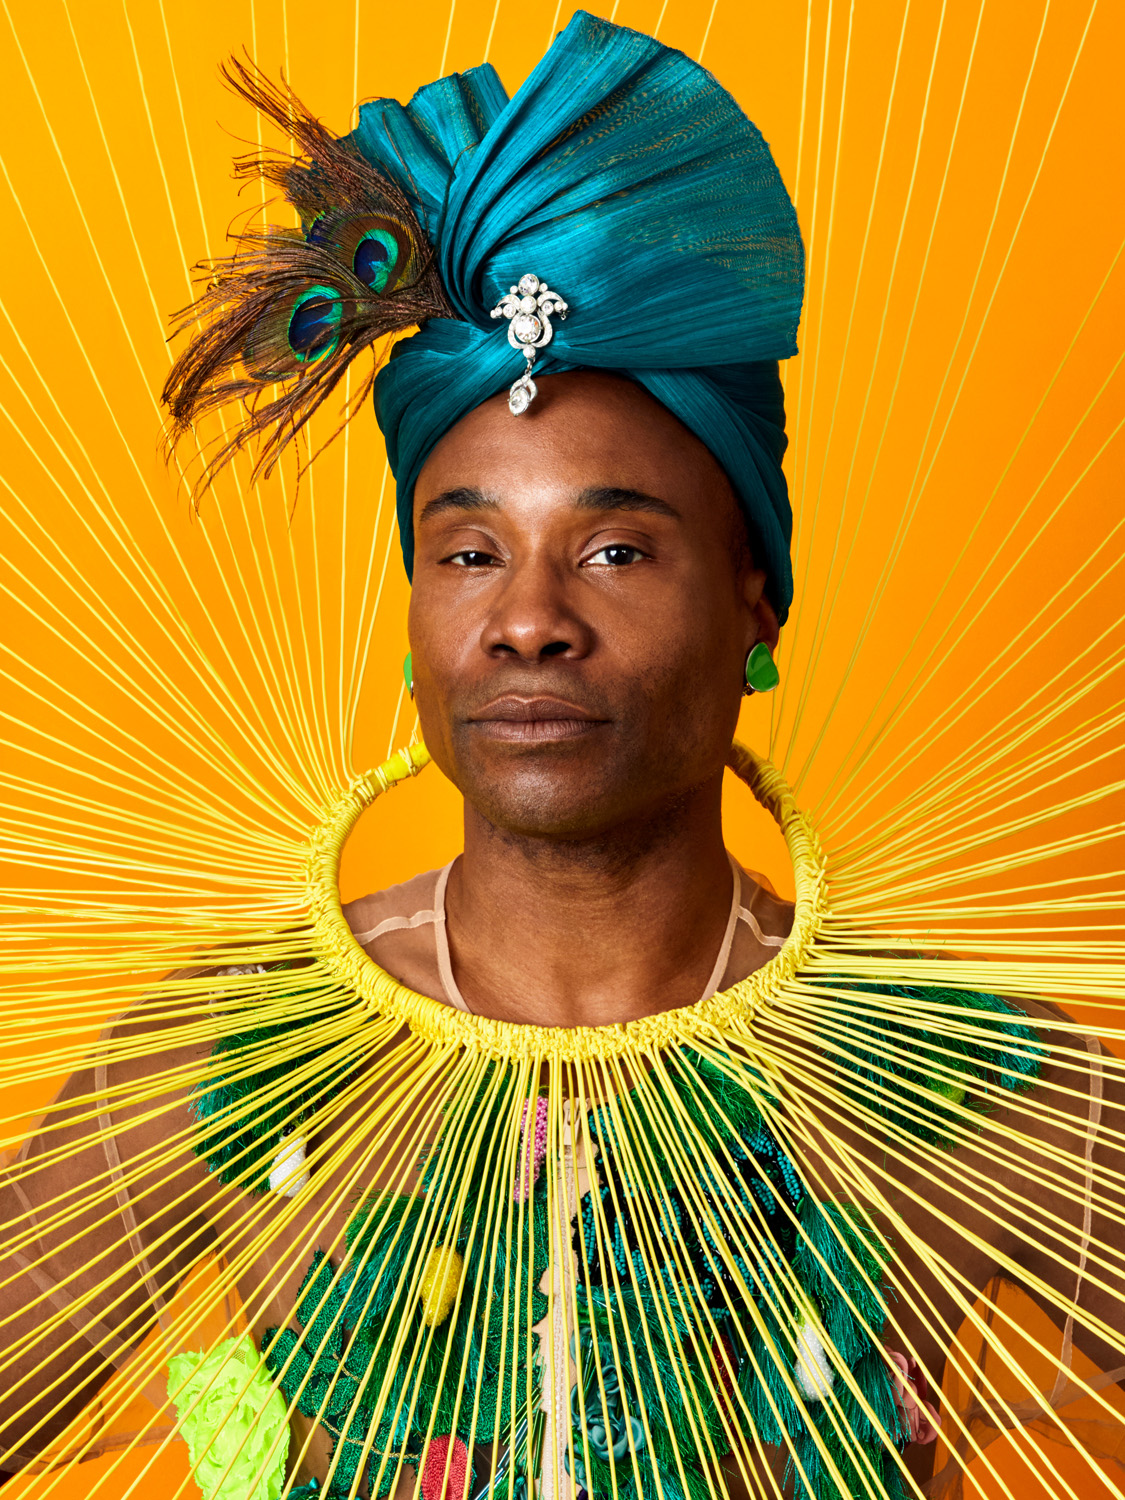 Billy Porter Photographed by Winnie Au for Bust Magazine.